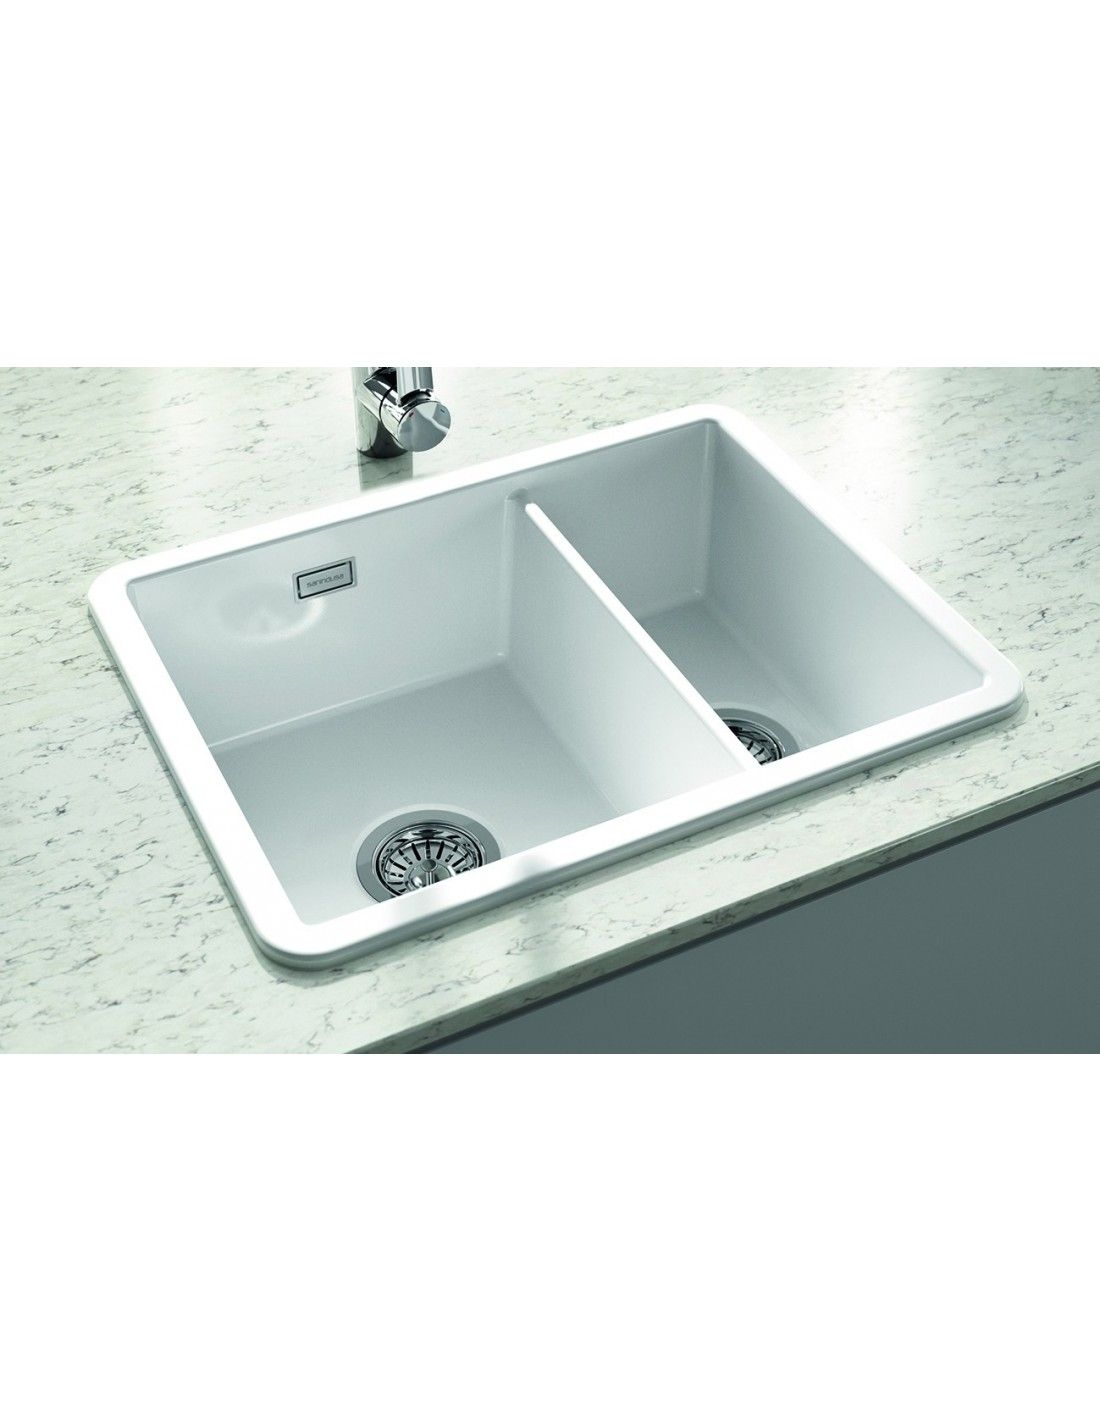 Thoms Denby Metro White Ceramic Kitchen Sinks 1 5 Bowl Topmount Or Undermount Fitting Met1020 Sink White Ceramic Kitchen Sink Ceramic Kitchen Sinks